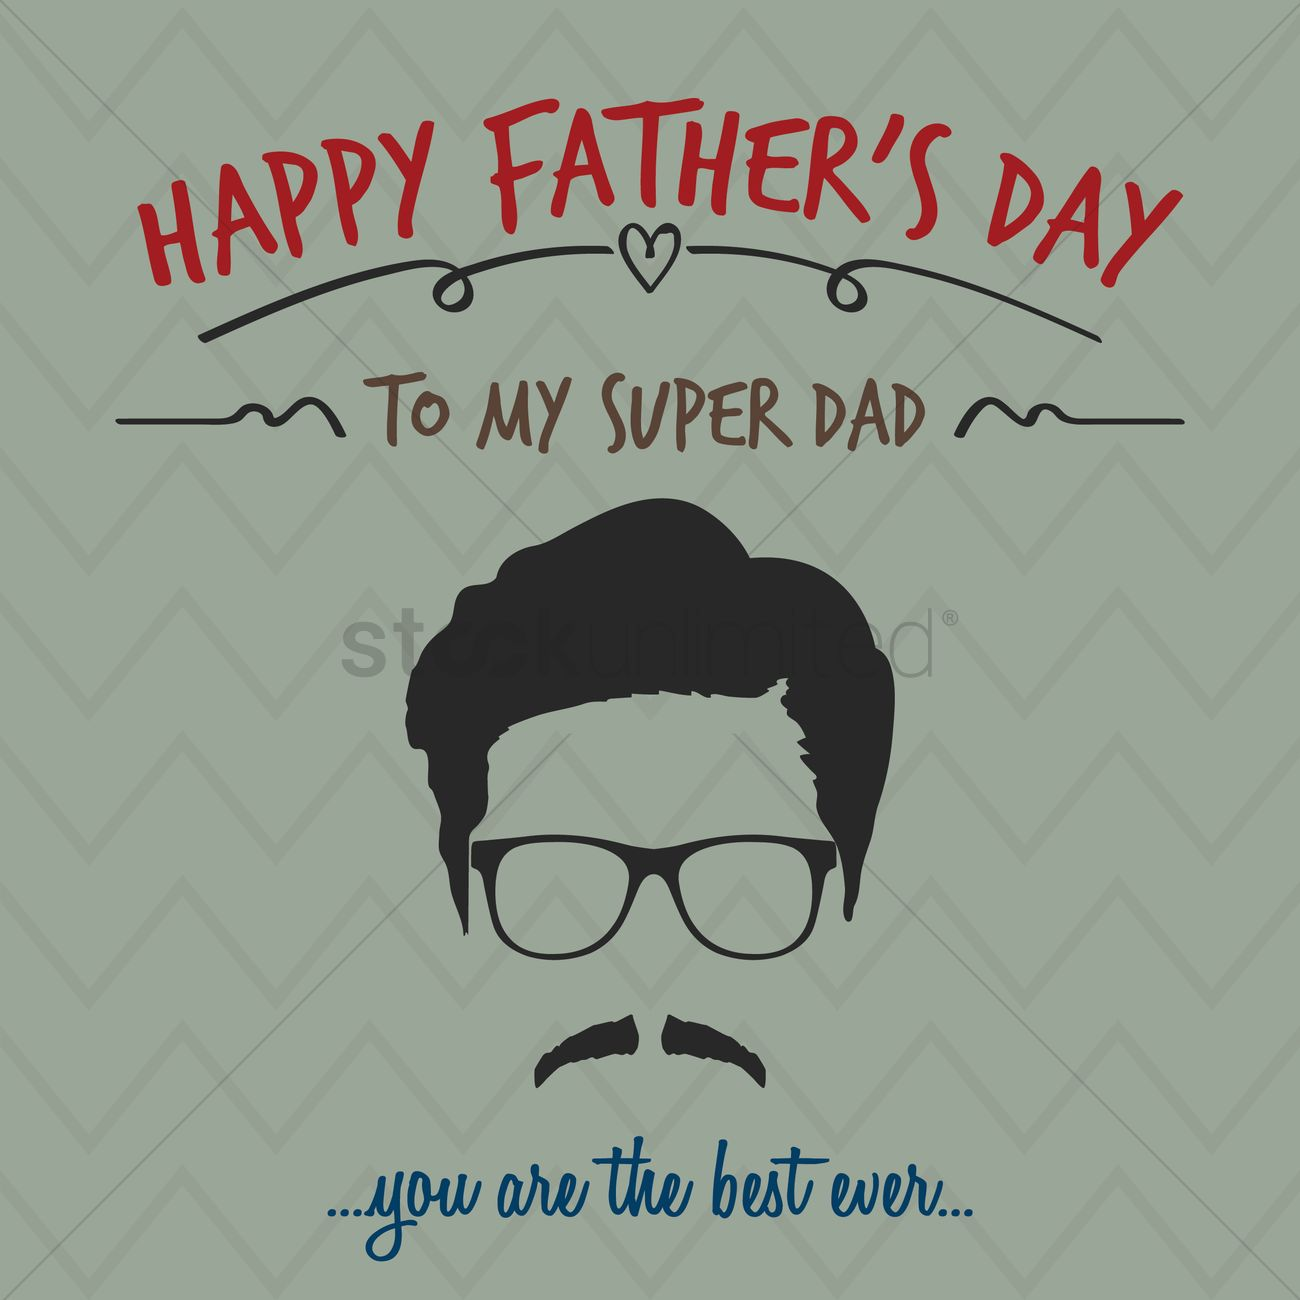 Happy Fathers Day Greeting Vector Image 1566070 Stockunlimited